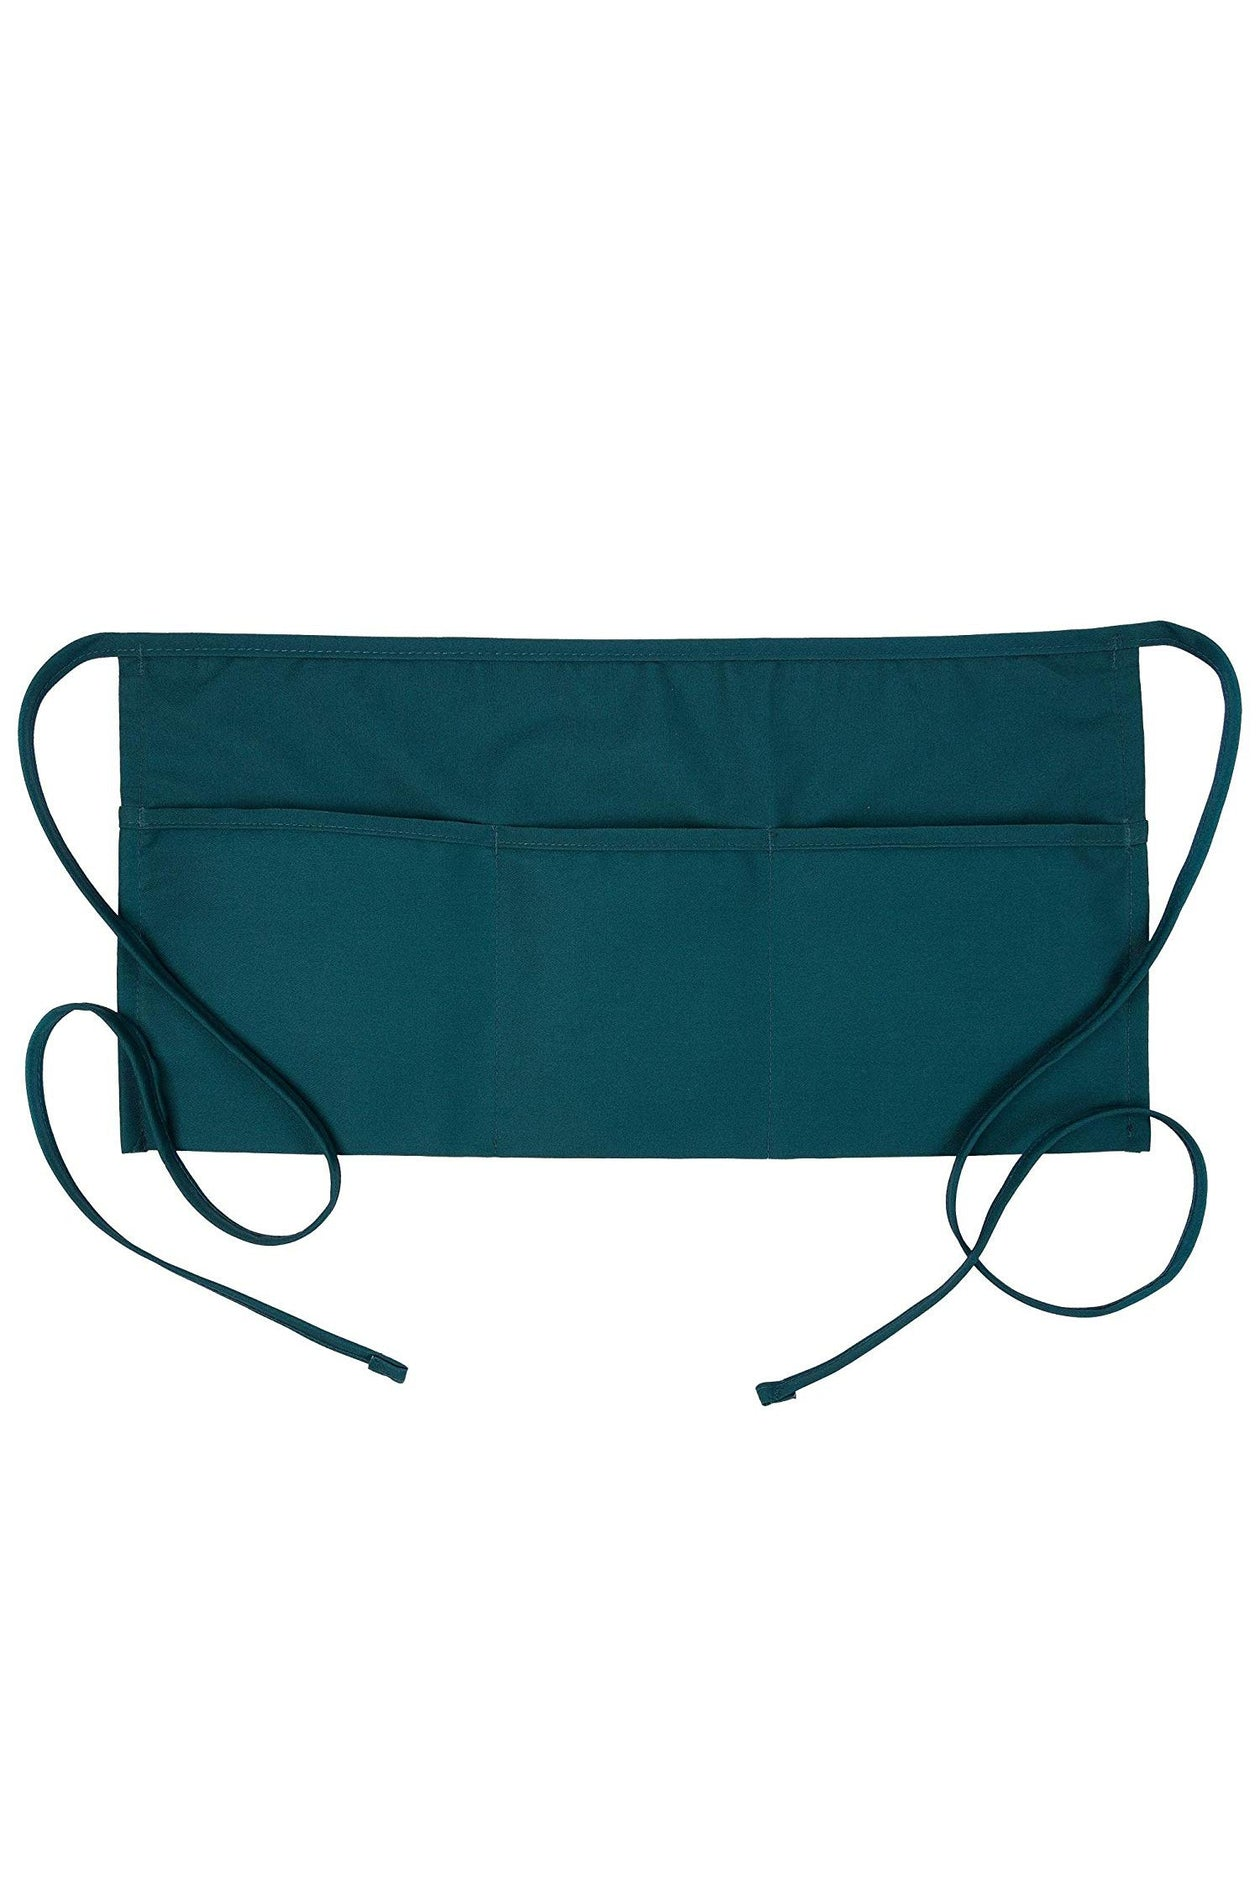 Teal Waist Apron (3 Pockets)